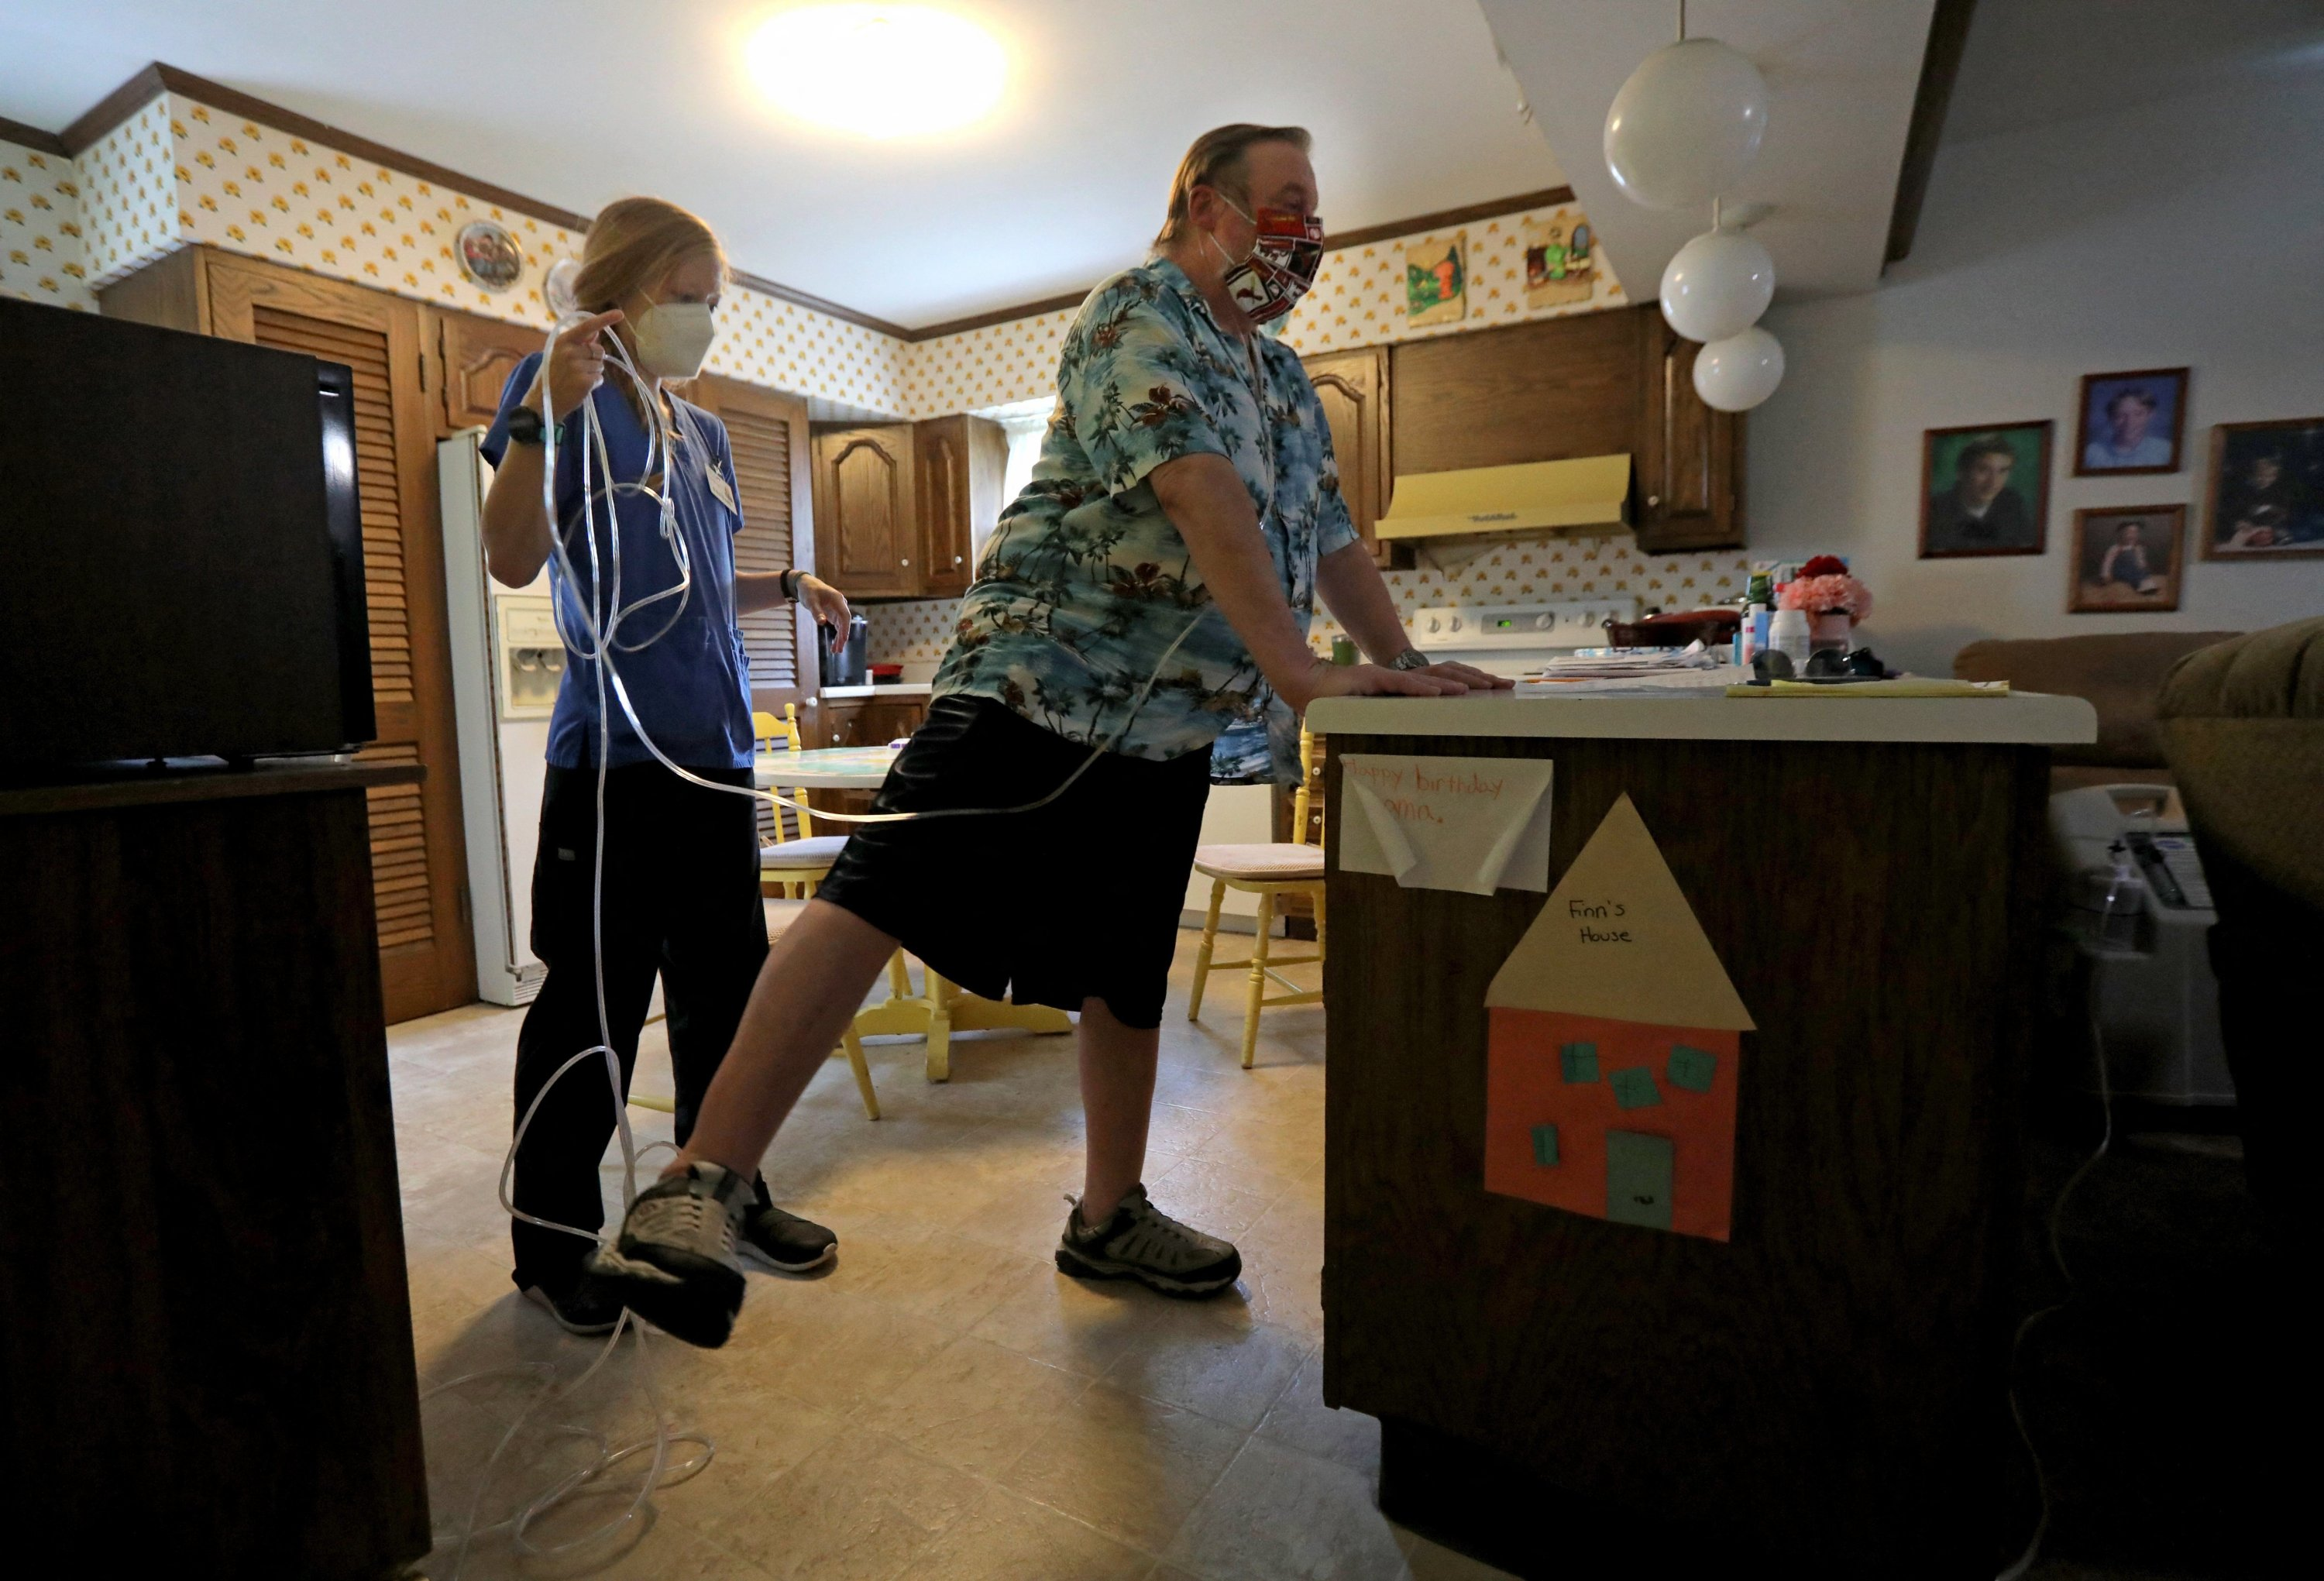 'I am grateful that I am living and getting my life back,' said COVID-19 survivor John Lincoln, who works on regaining balance and strength during a physical therapy session with PRN Kristy Schwarzkopf at his home in Carondelet Gardens, Missouri, U.S. Aug. 3, 2020. (Laurie Skrivan/St. Louis Post-Dispatch/TNS/ABACAPRESS.COM via REUTERS)